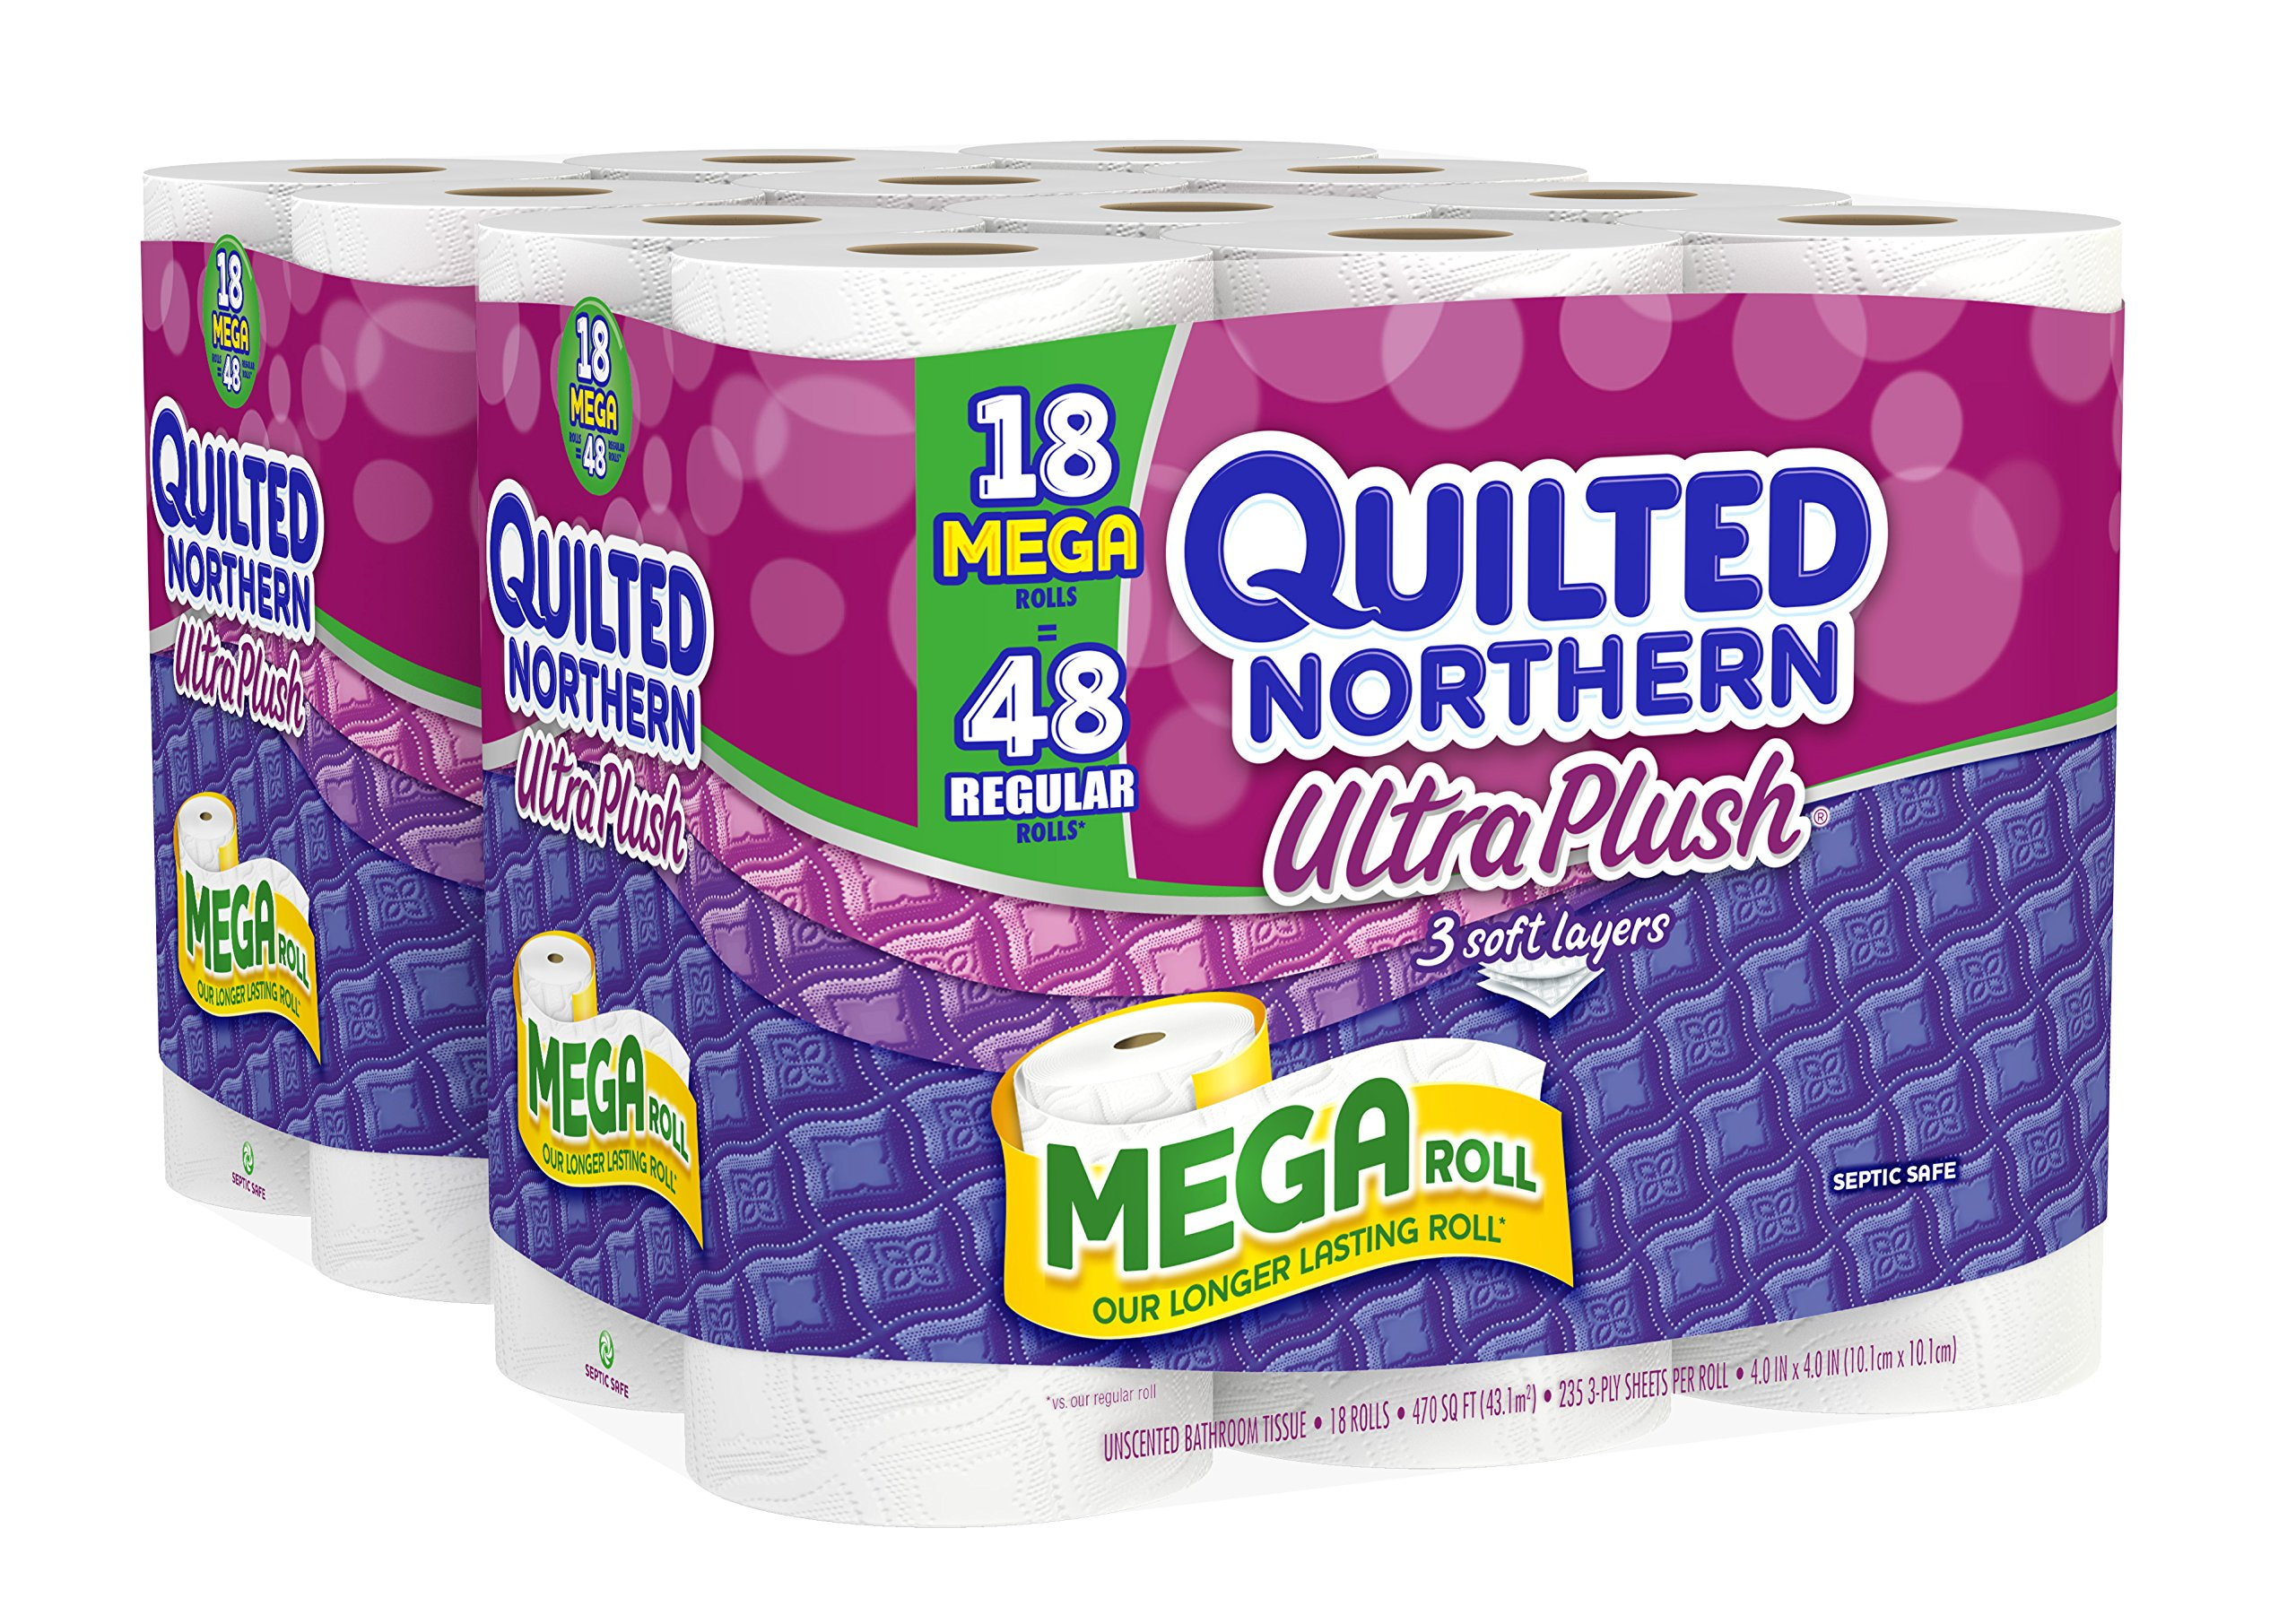 Quilted Northern Ultra Plush Bath Tissue, 18 Mega Rolls Toilet Paper, Pack of 2 (36 Mega Rolls) by Quilted Northern